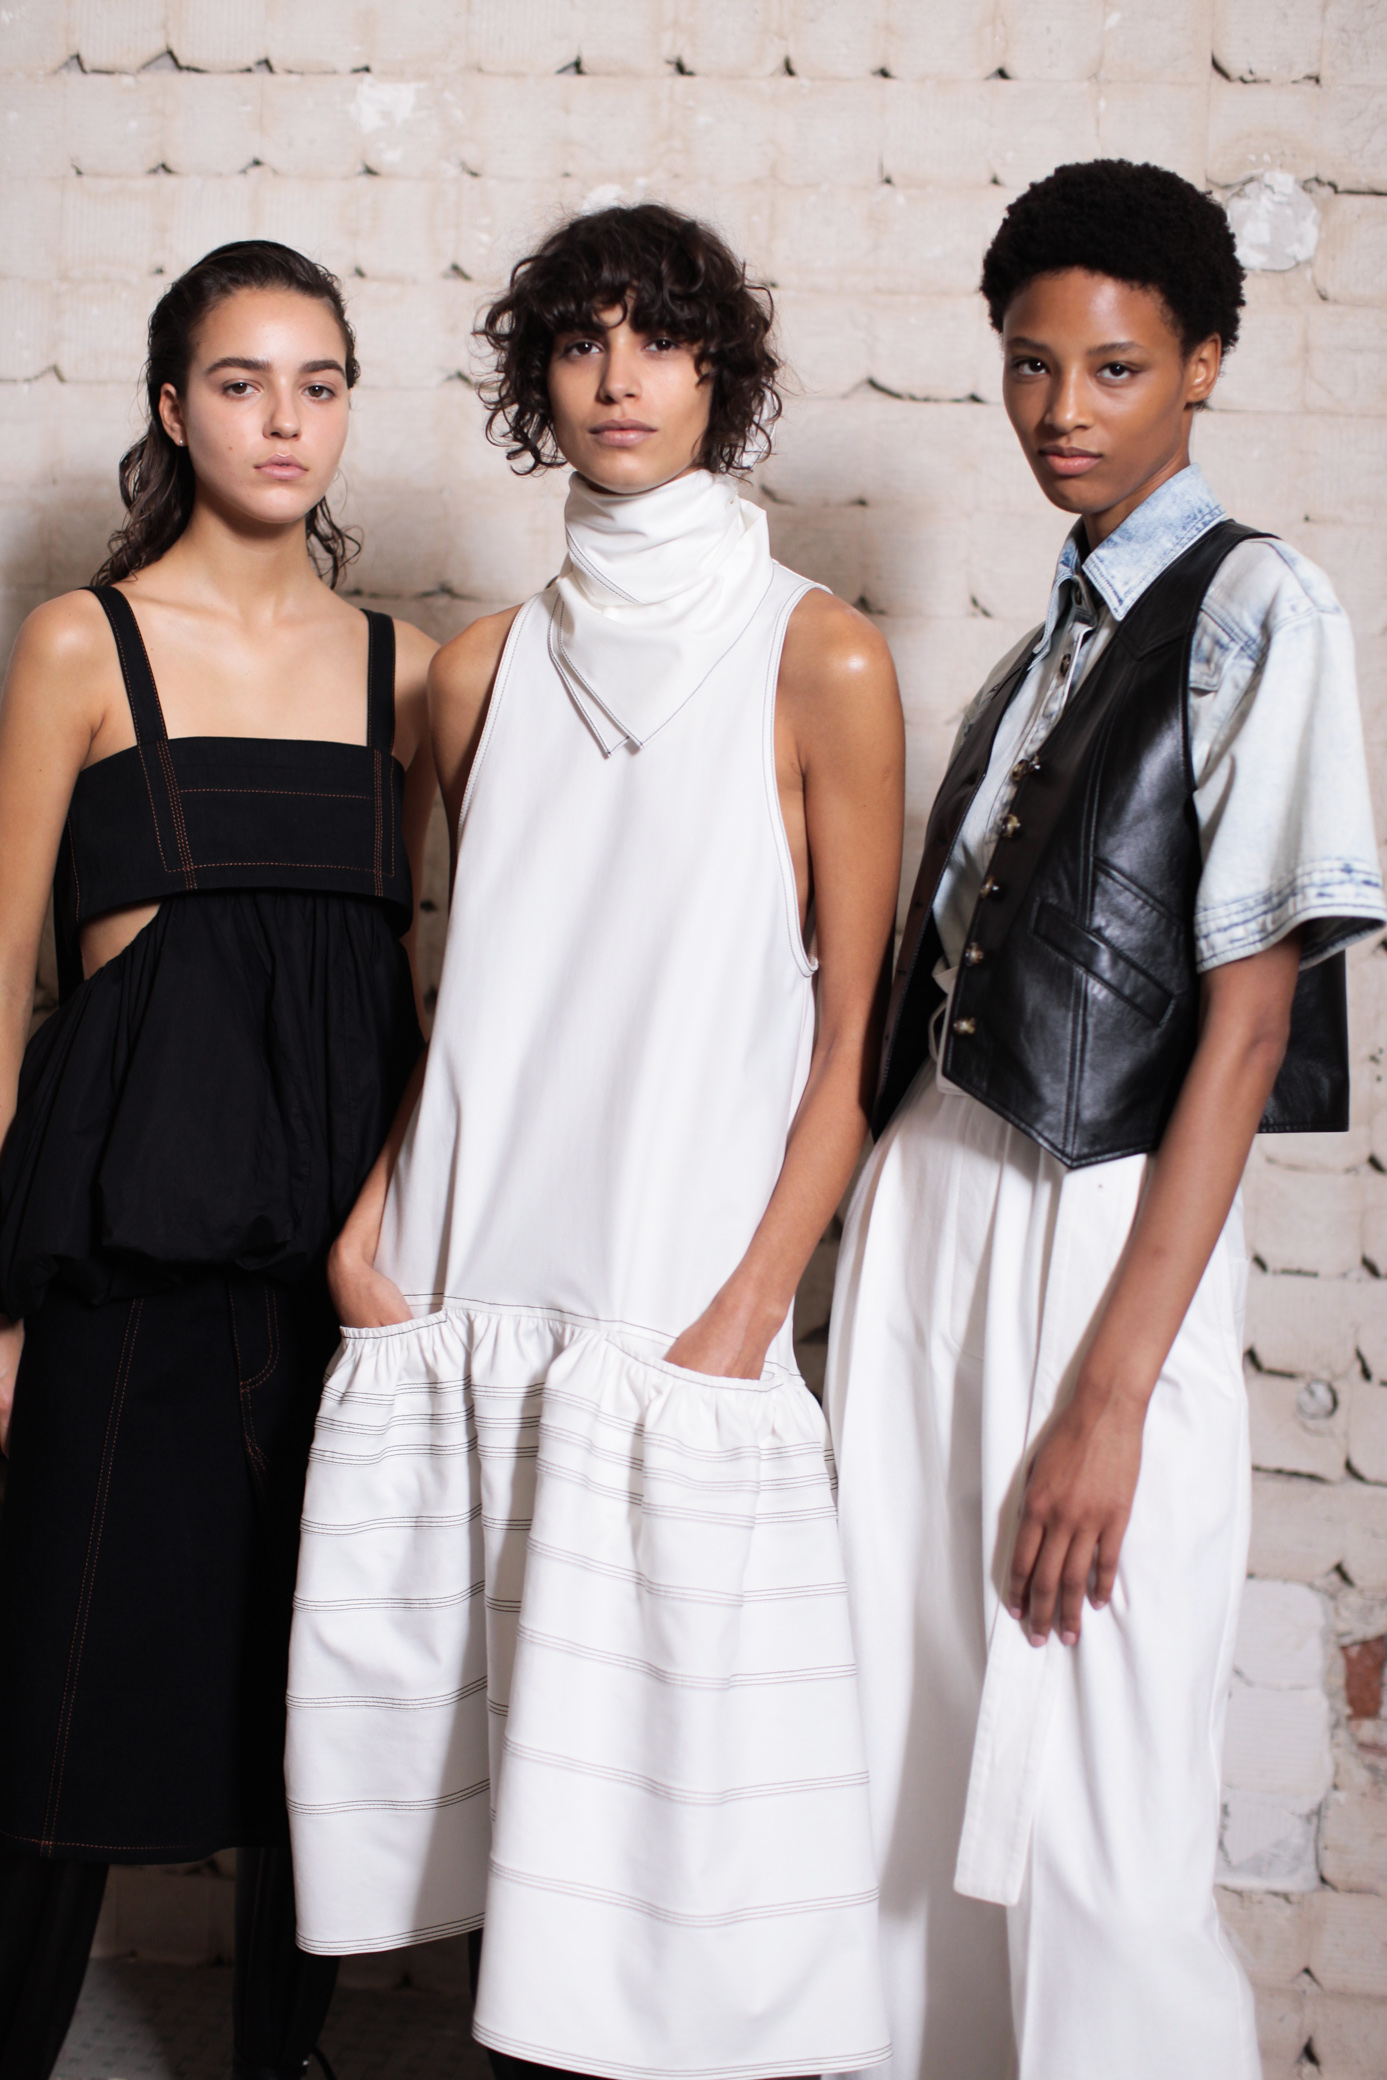 Backstage at Proenza Schouler RTW Spring 2019